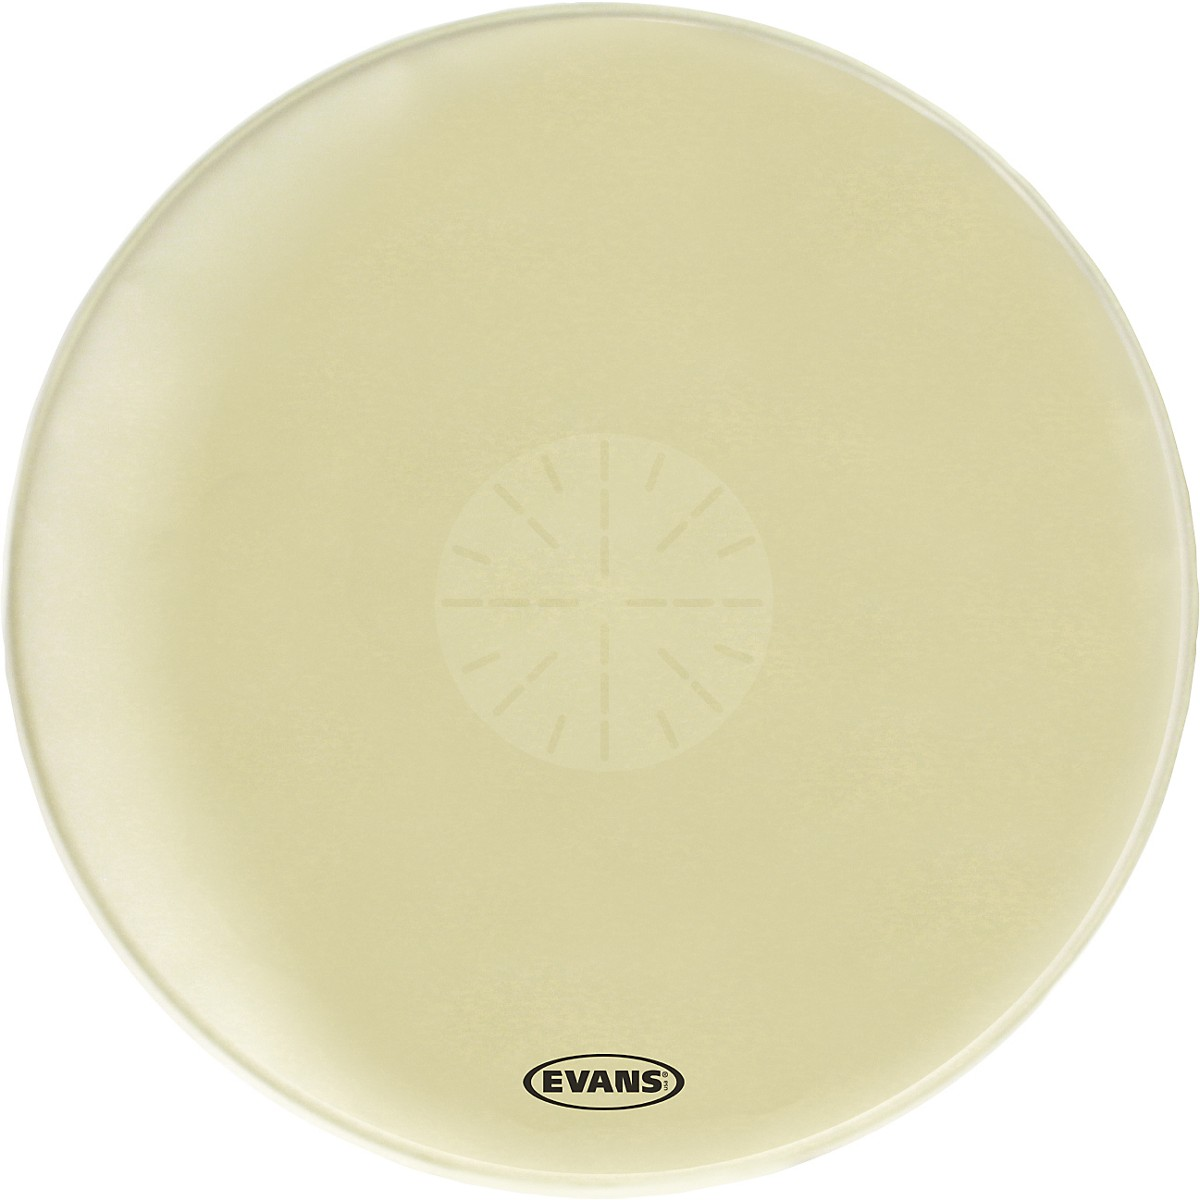 Evans Strata 1400 Orchestral-Bass Drumhead with Power Center Dot